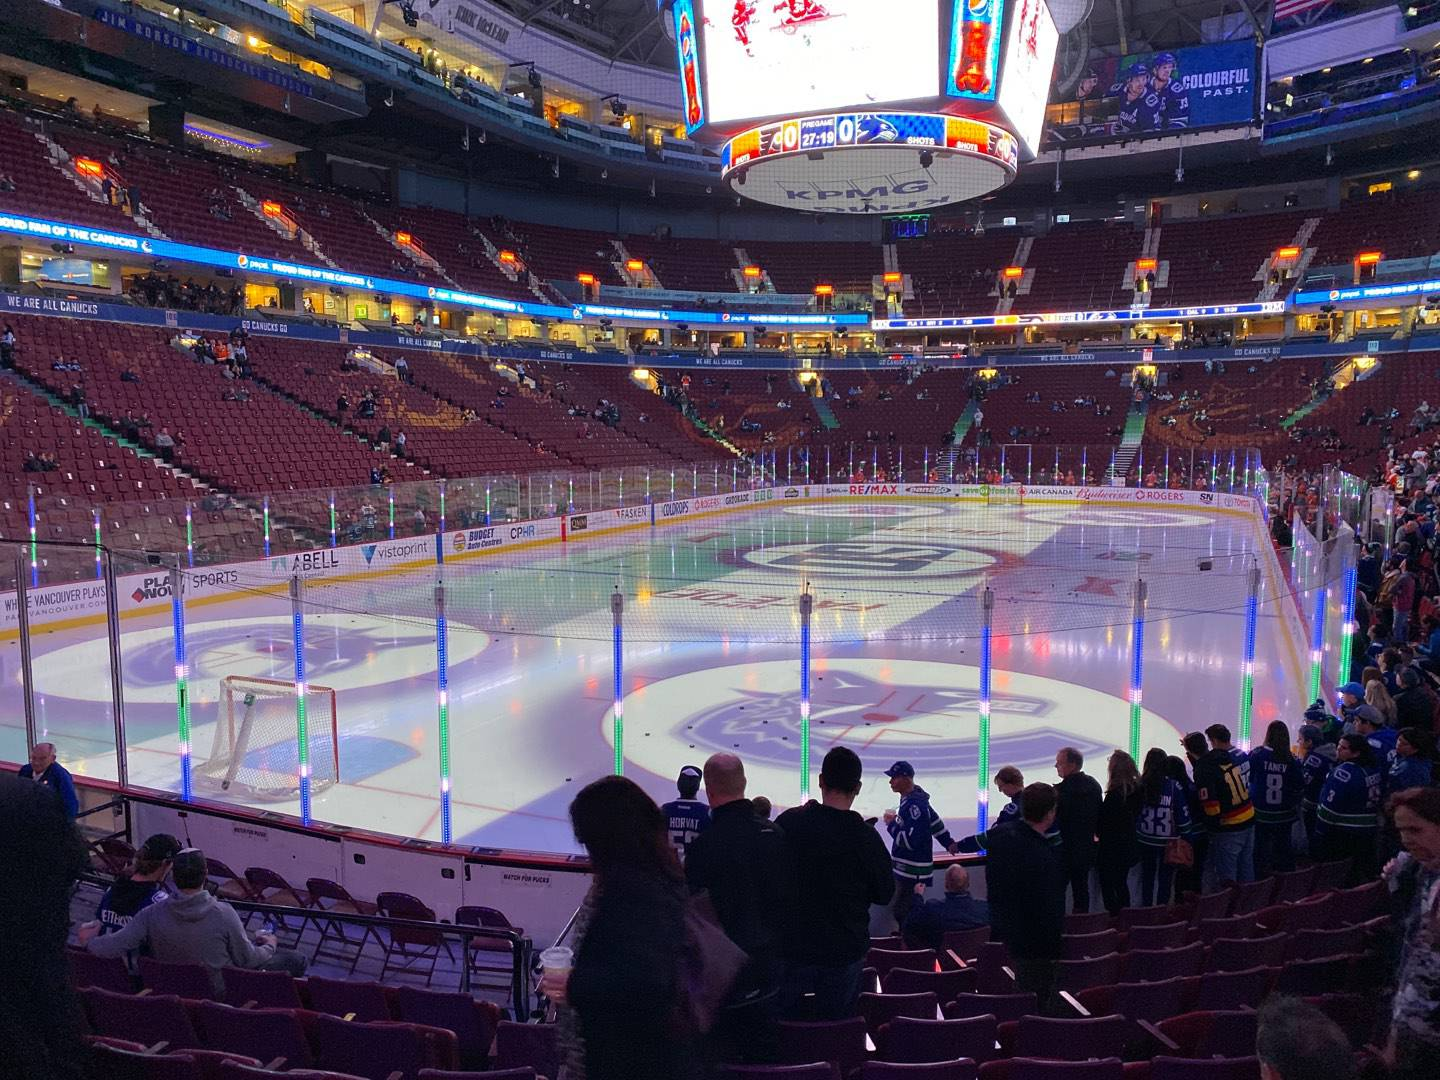 Rogers Arena Section 120 Row 11 Seat 11